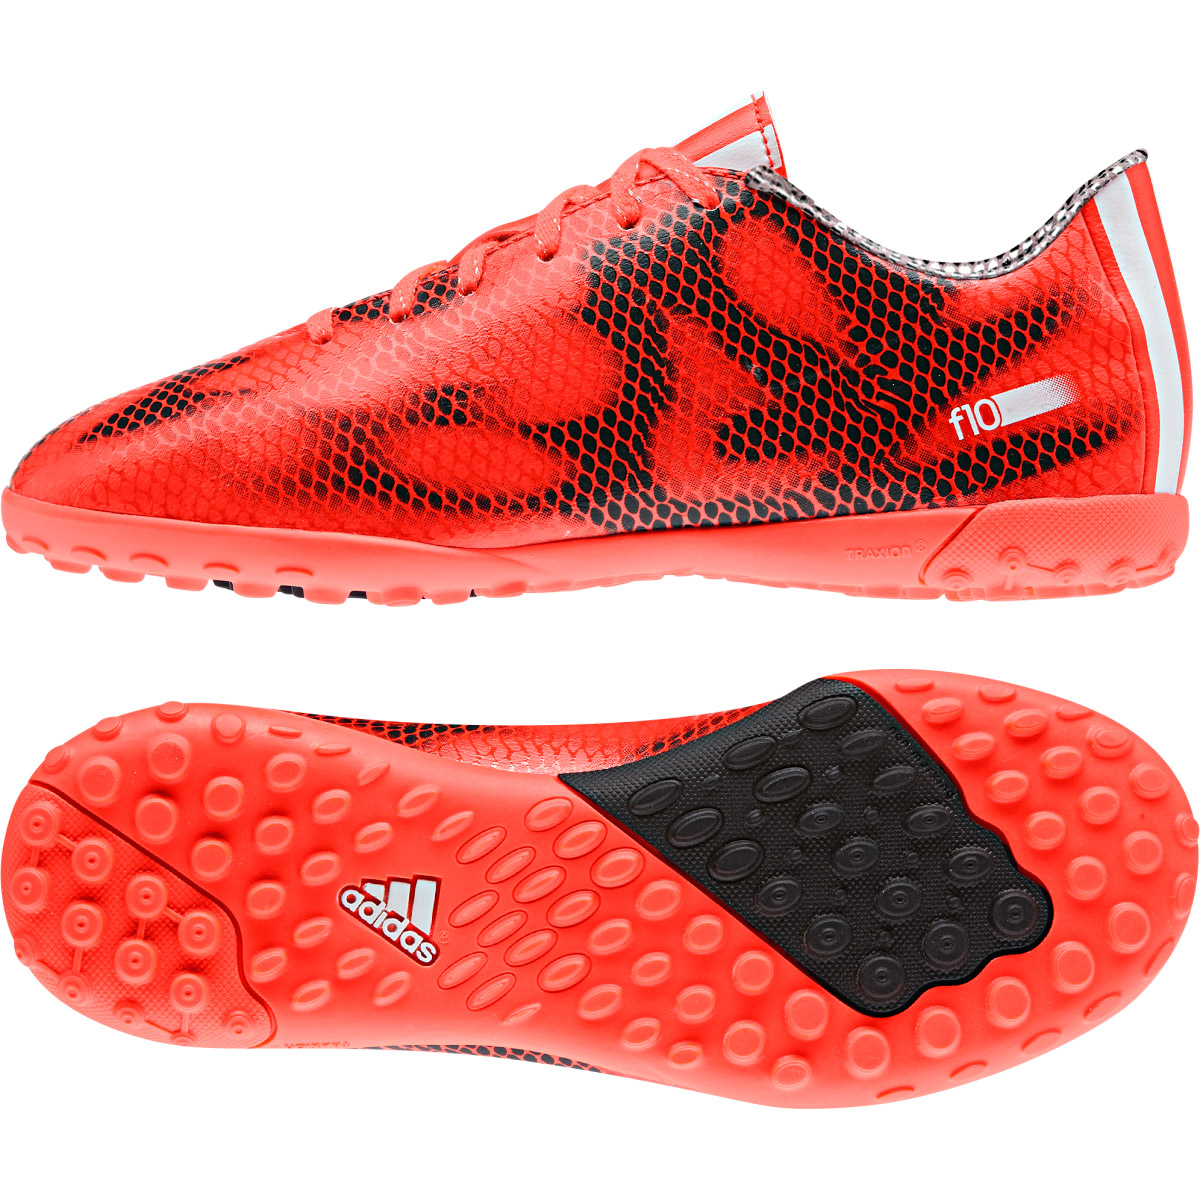 Adidas F10 Astroturf Trainers  Kids Red